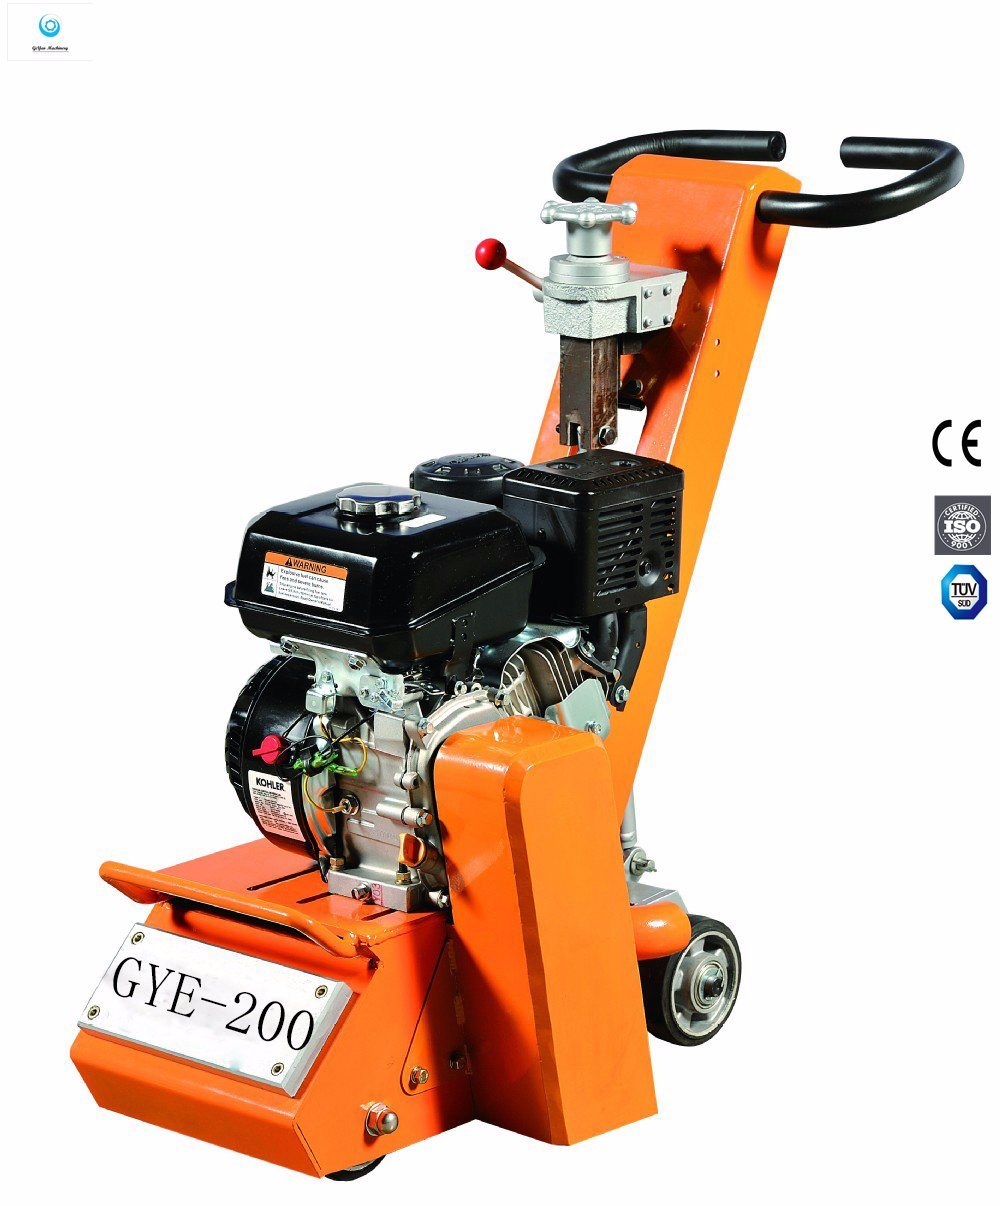 Honda Gx160 Concrete Floor Scarifier with Anti-Vibration Handle Design Gye-200